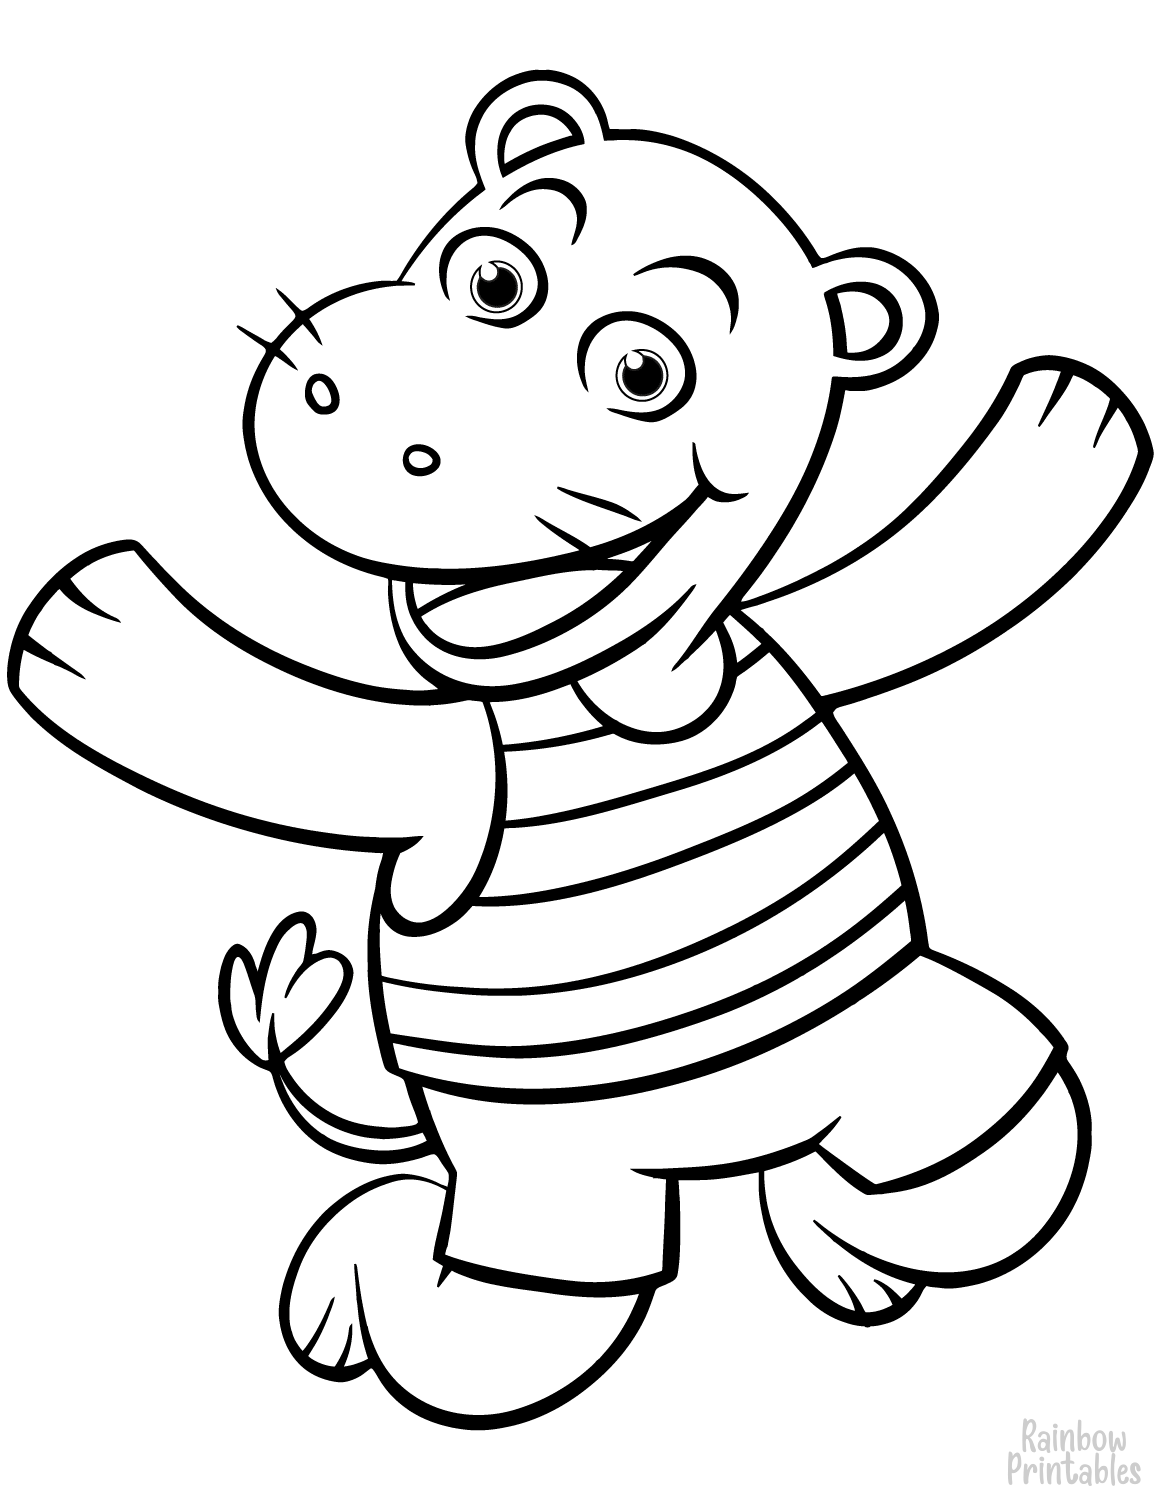 Jumping happy doodle cartoon hippo coloring page for small kids